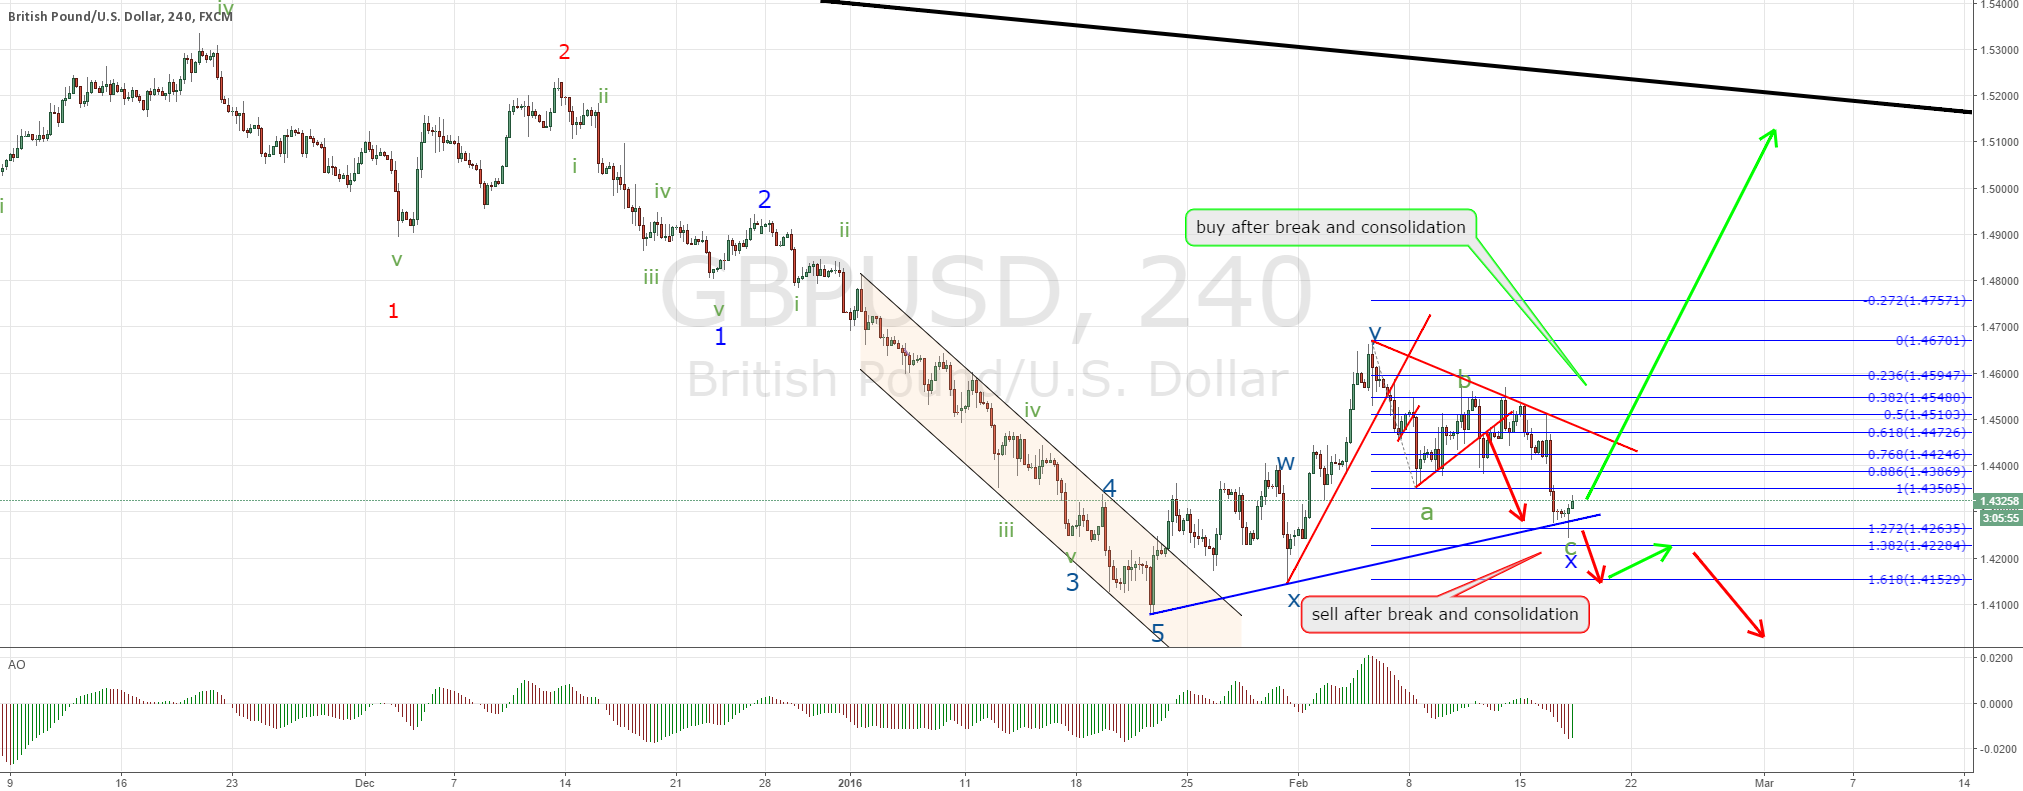 GBPUSD hit target after a second entry